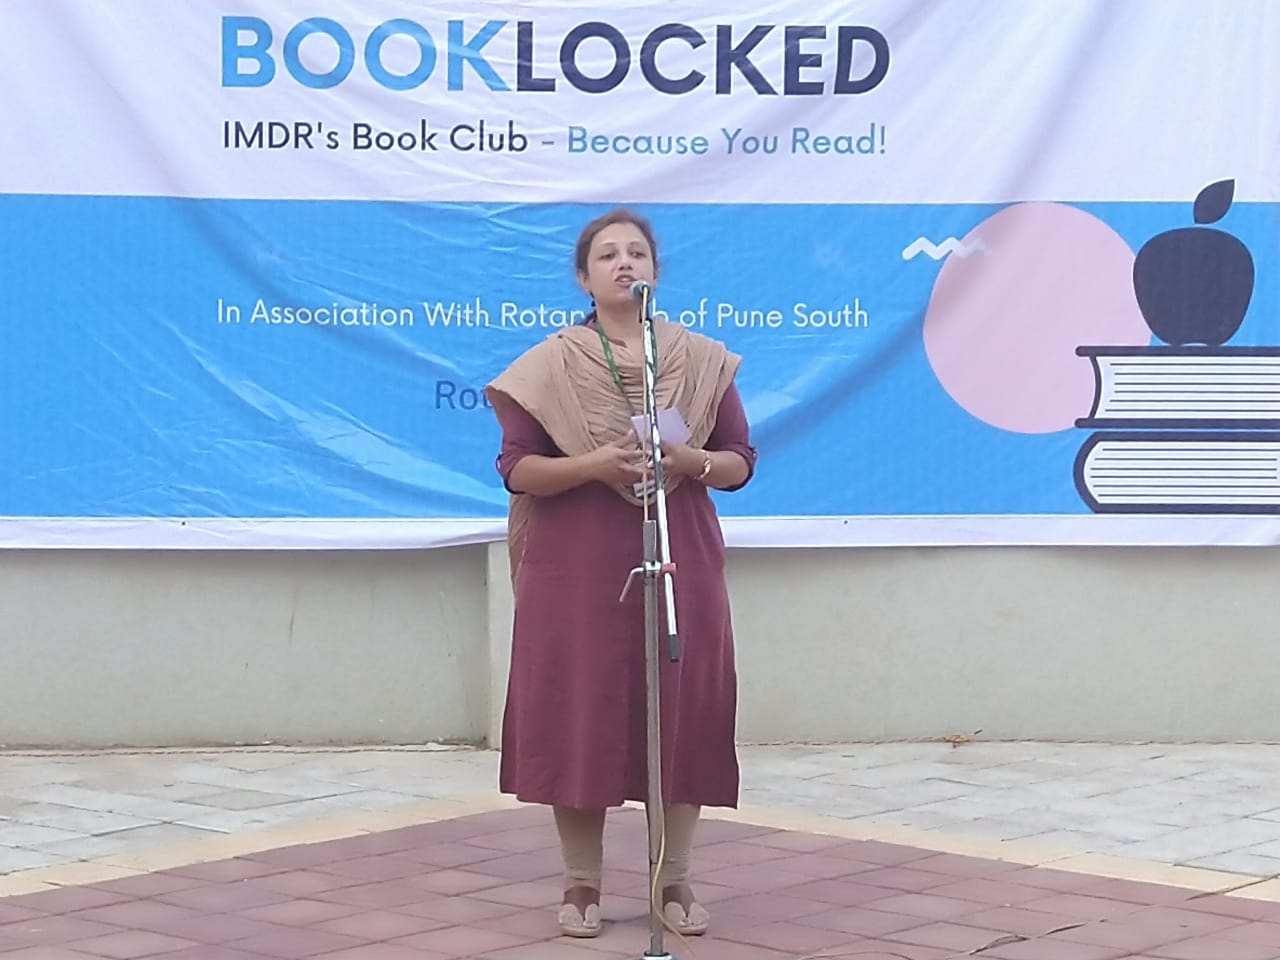 Booklocked